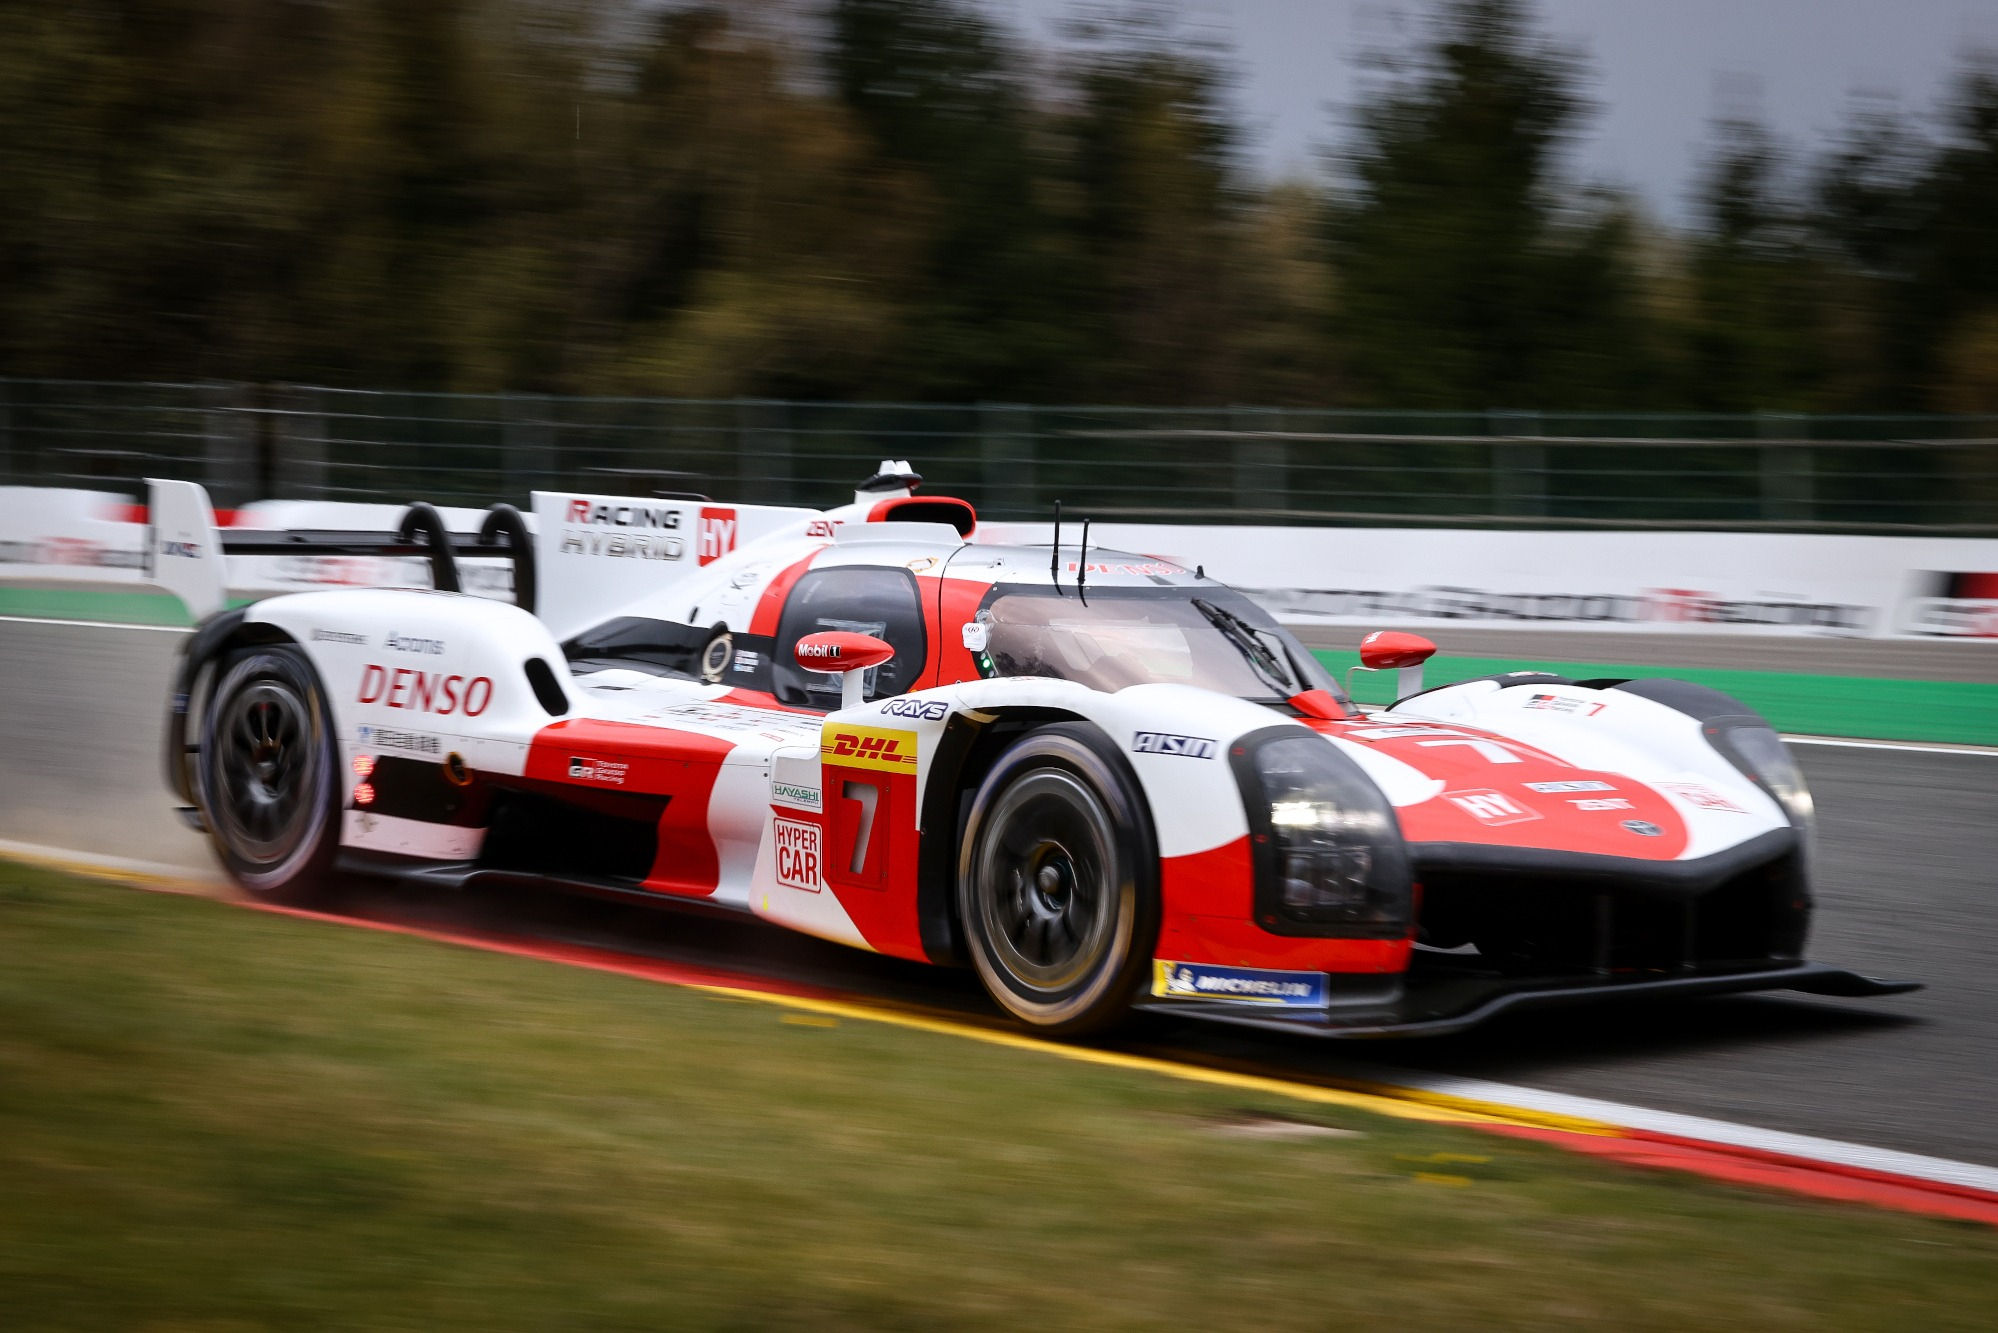 Toyota's new hypercar claimed victory on its debut at the Spa WEC round earlier this year